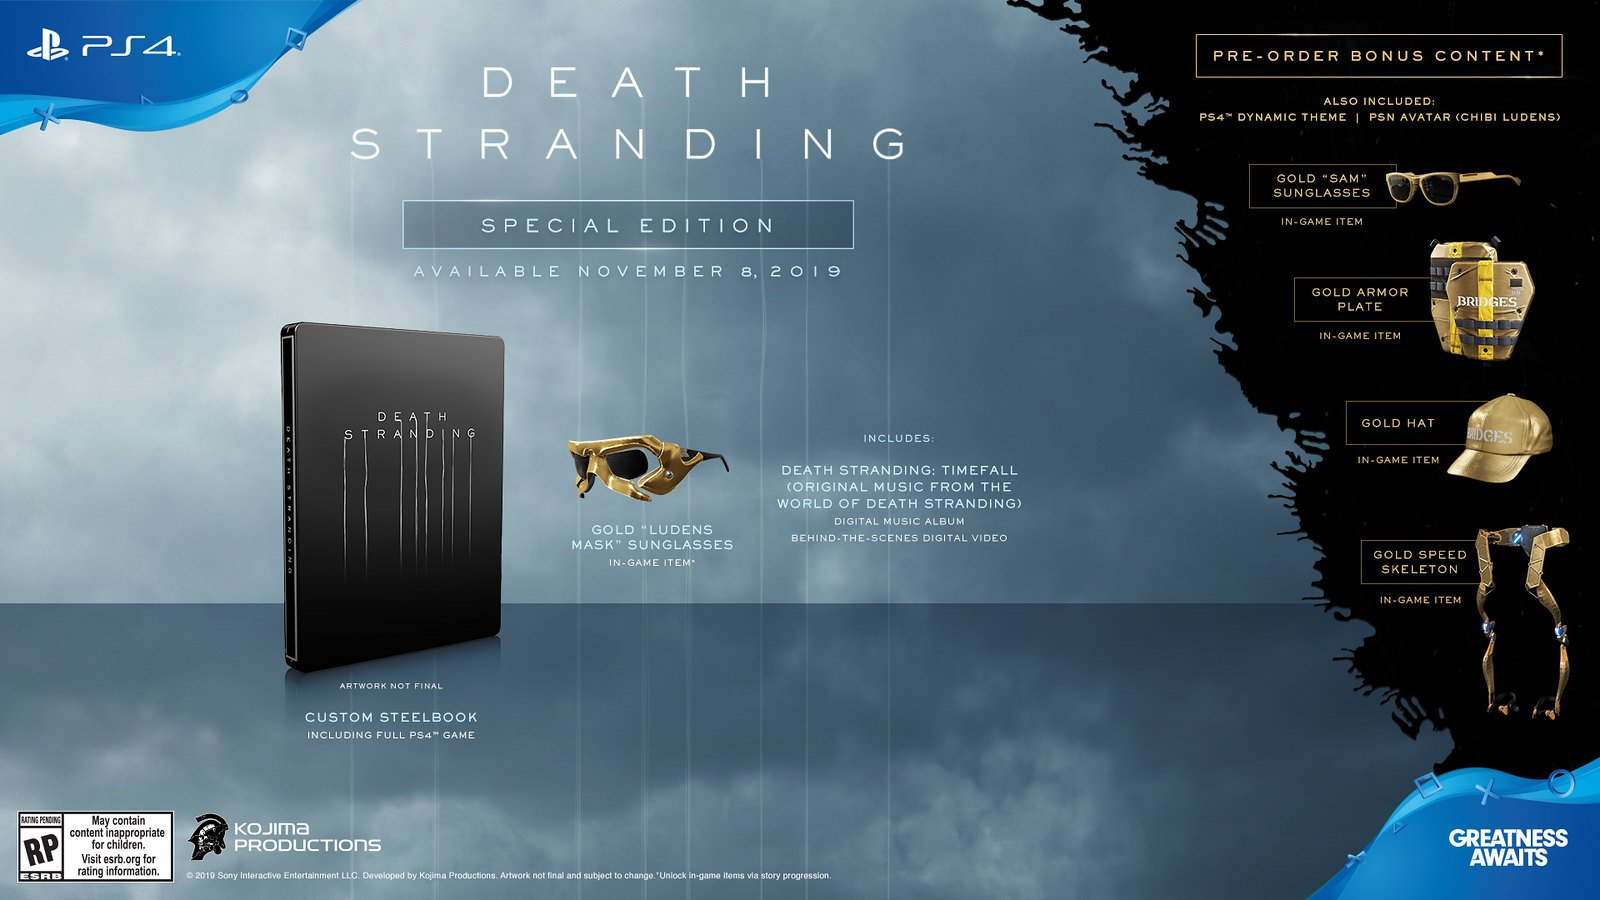 Death Stranding Special Edition differences preorder bonuses